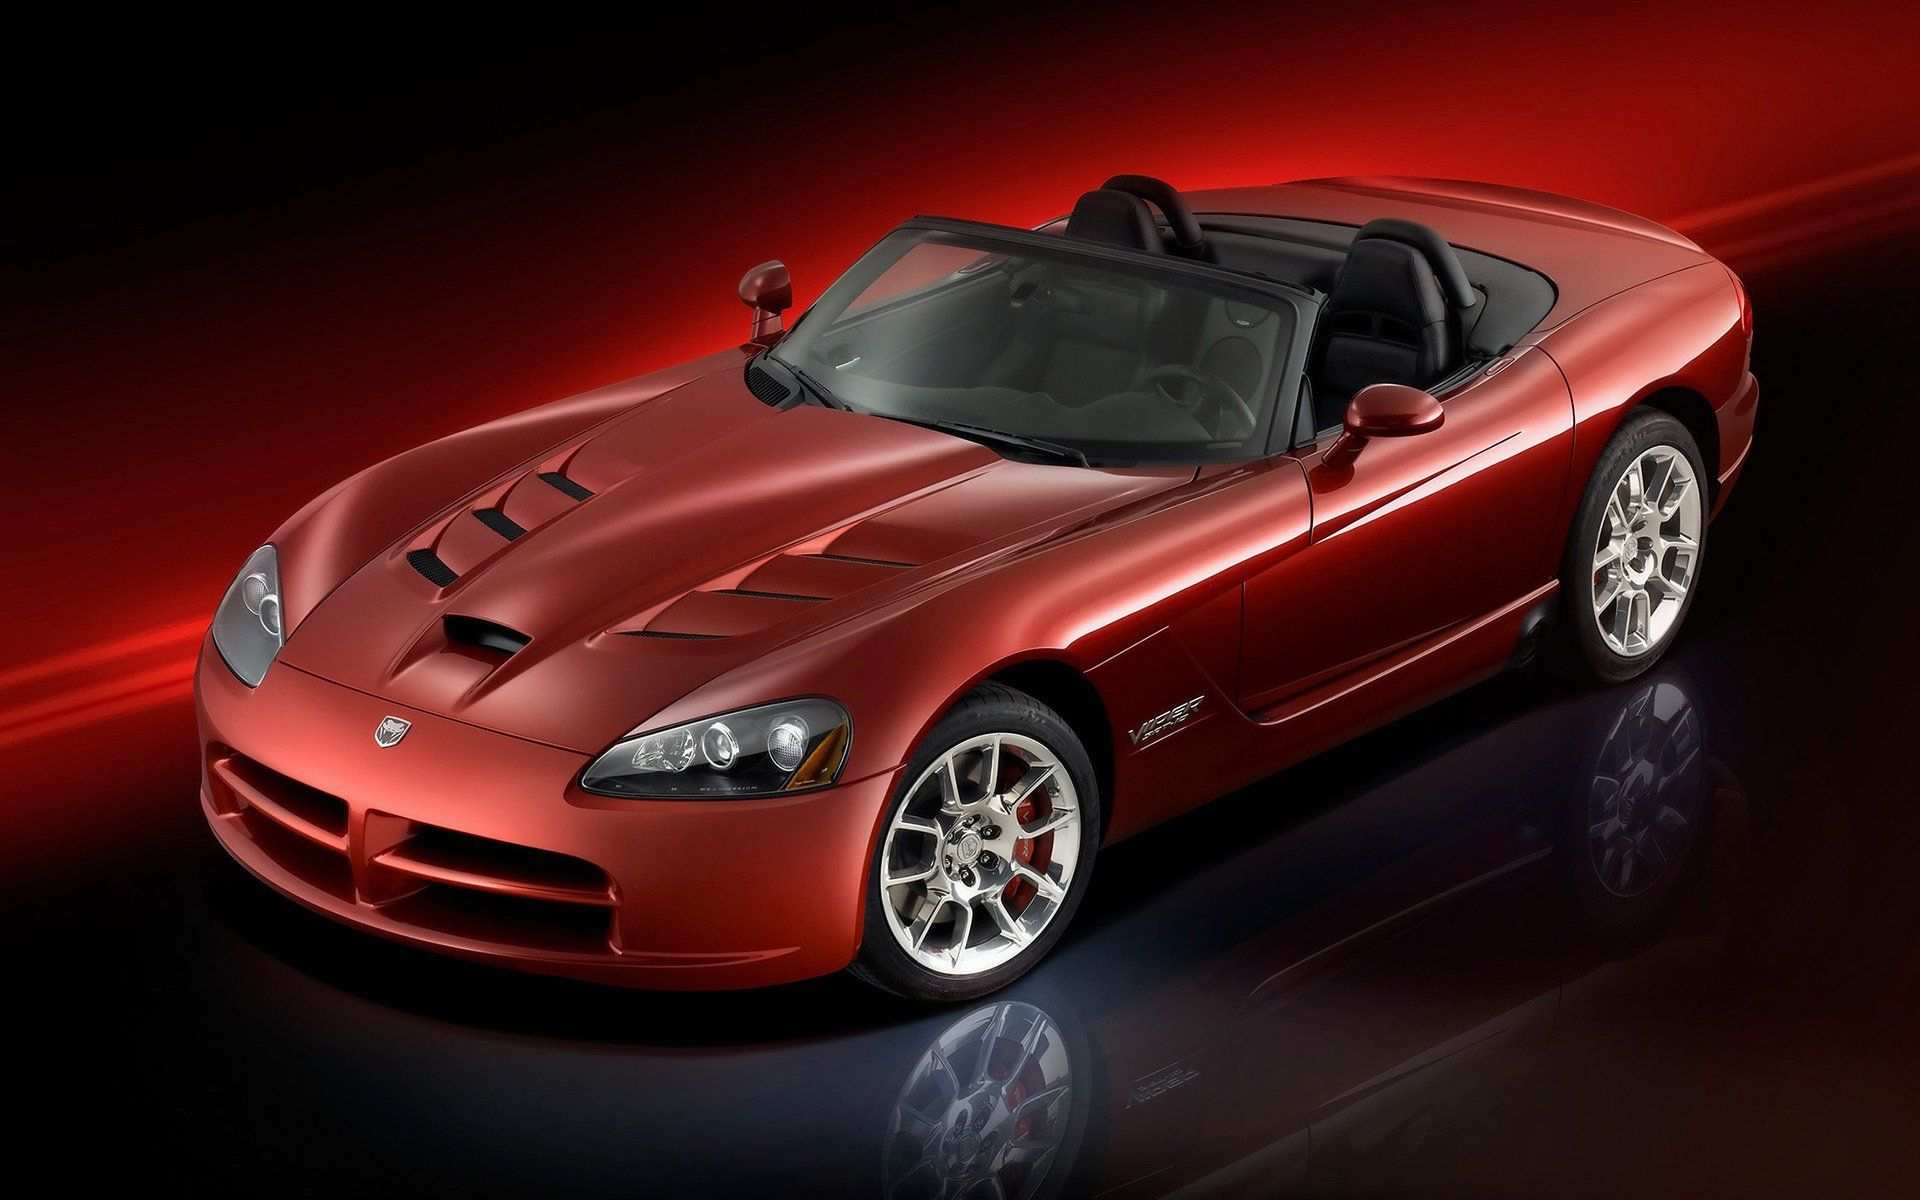 85 Great 2020 Dodge Viper Roadster Model with 2020 Dodge Viper Roadster